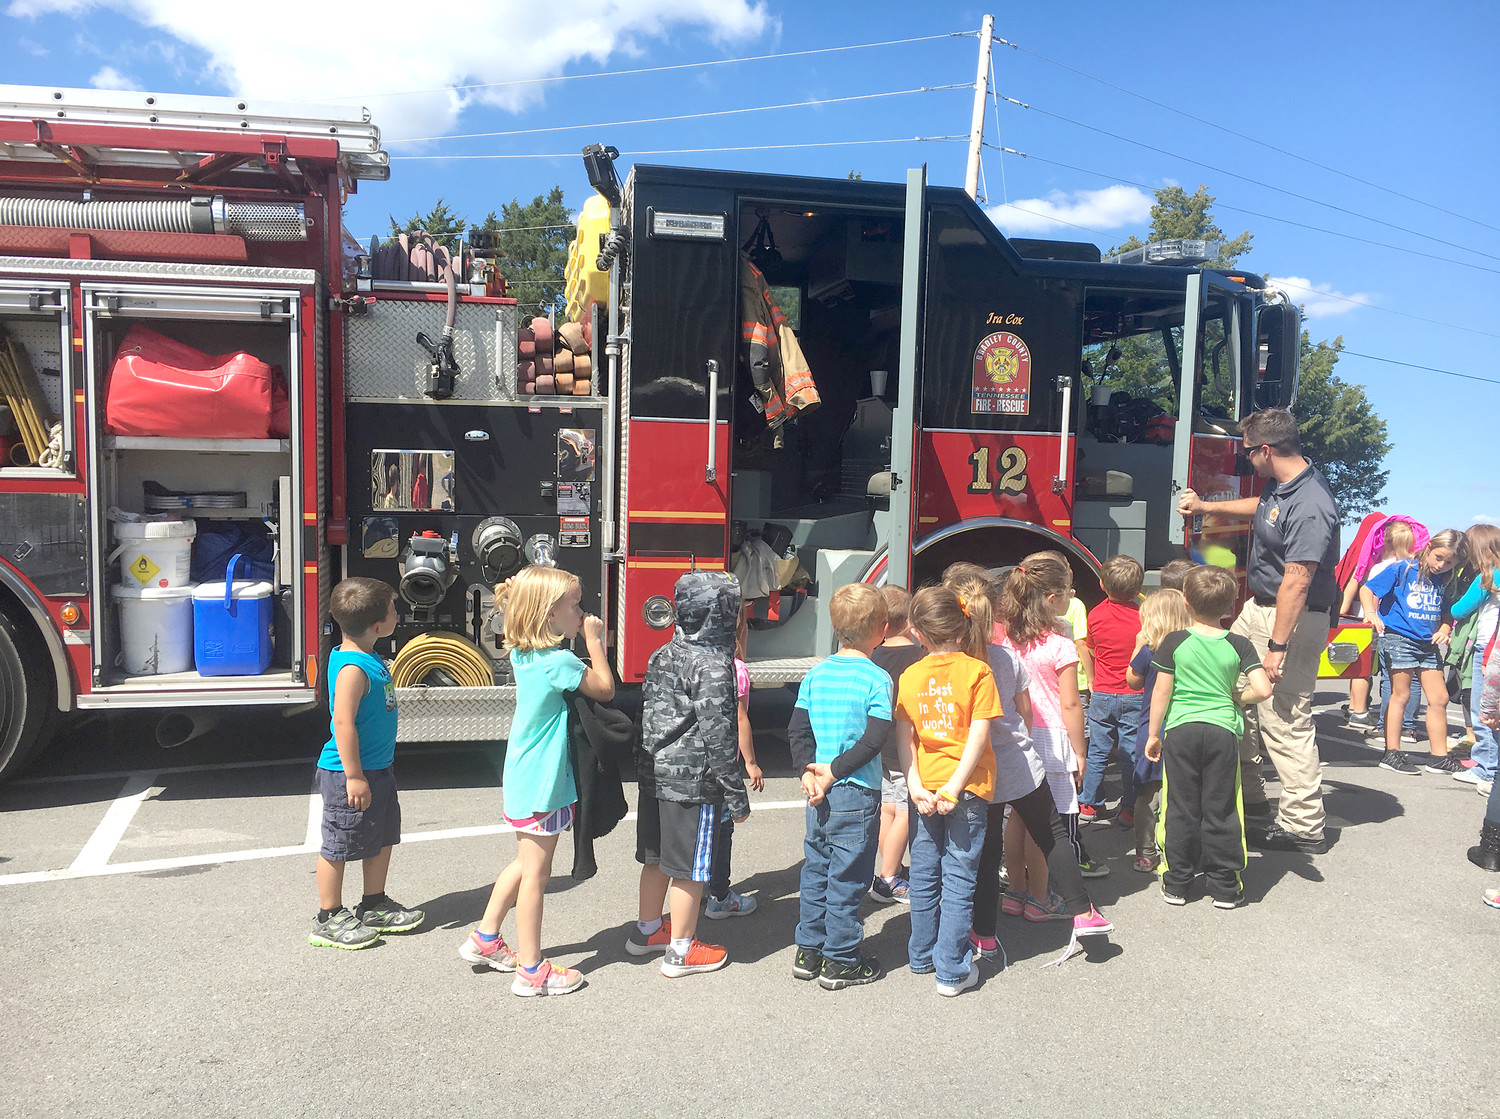 KINDERGARTEN students at Valley View Elementary School learn about the functions of fire trucks. Bradley County Fire-Rescue recently visited the school to teach students about fire safety and how firefighters help in emergencies.